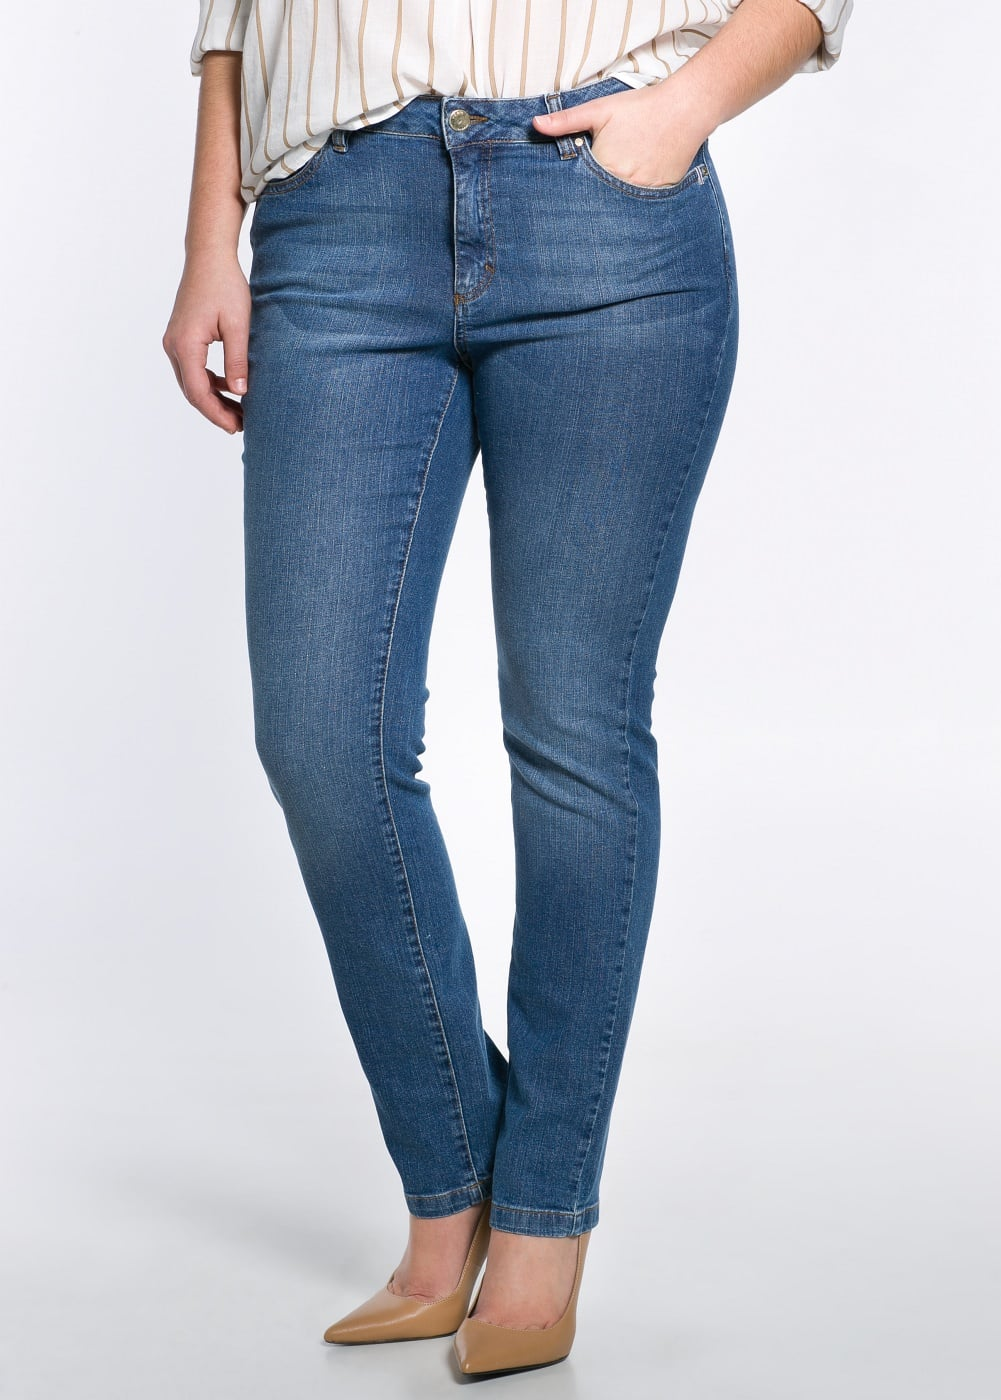 Royal skinny jeans